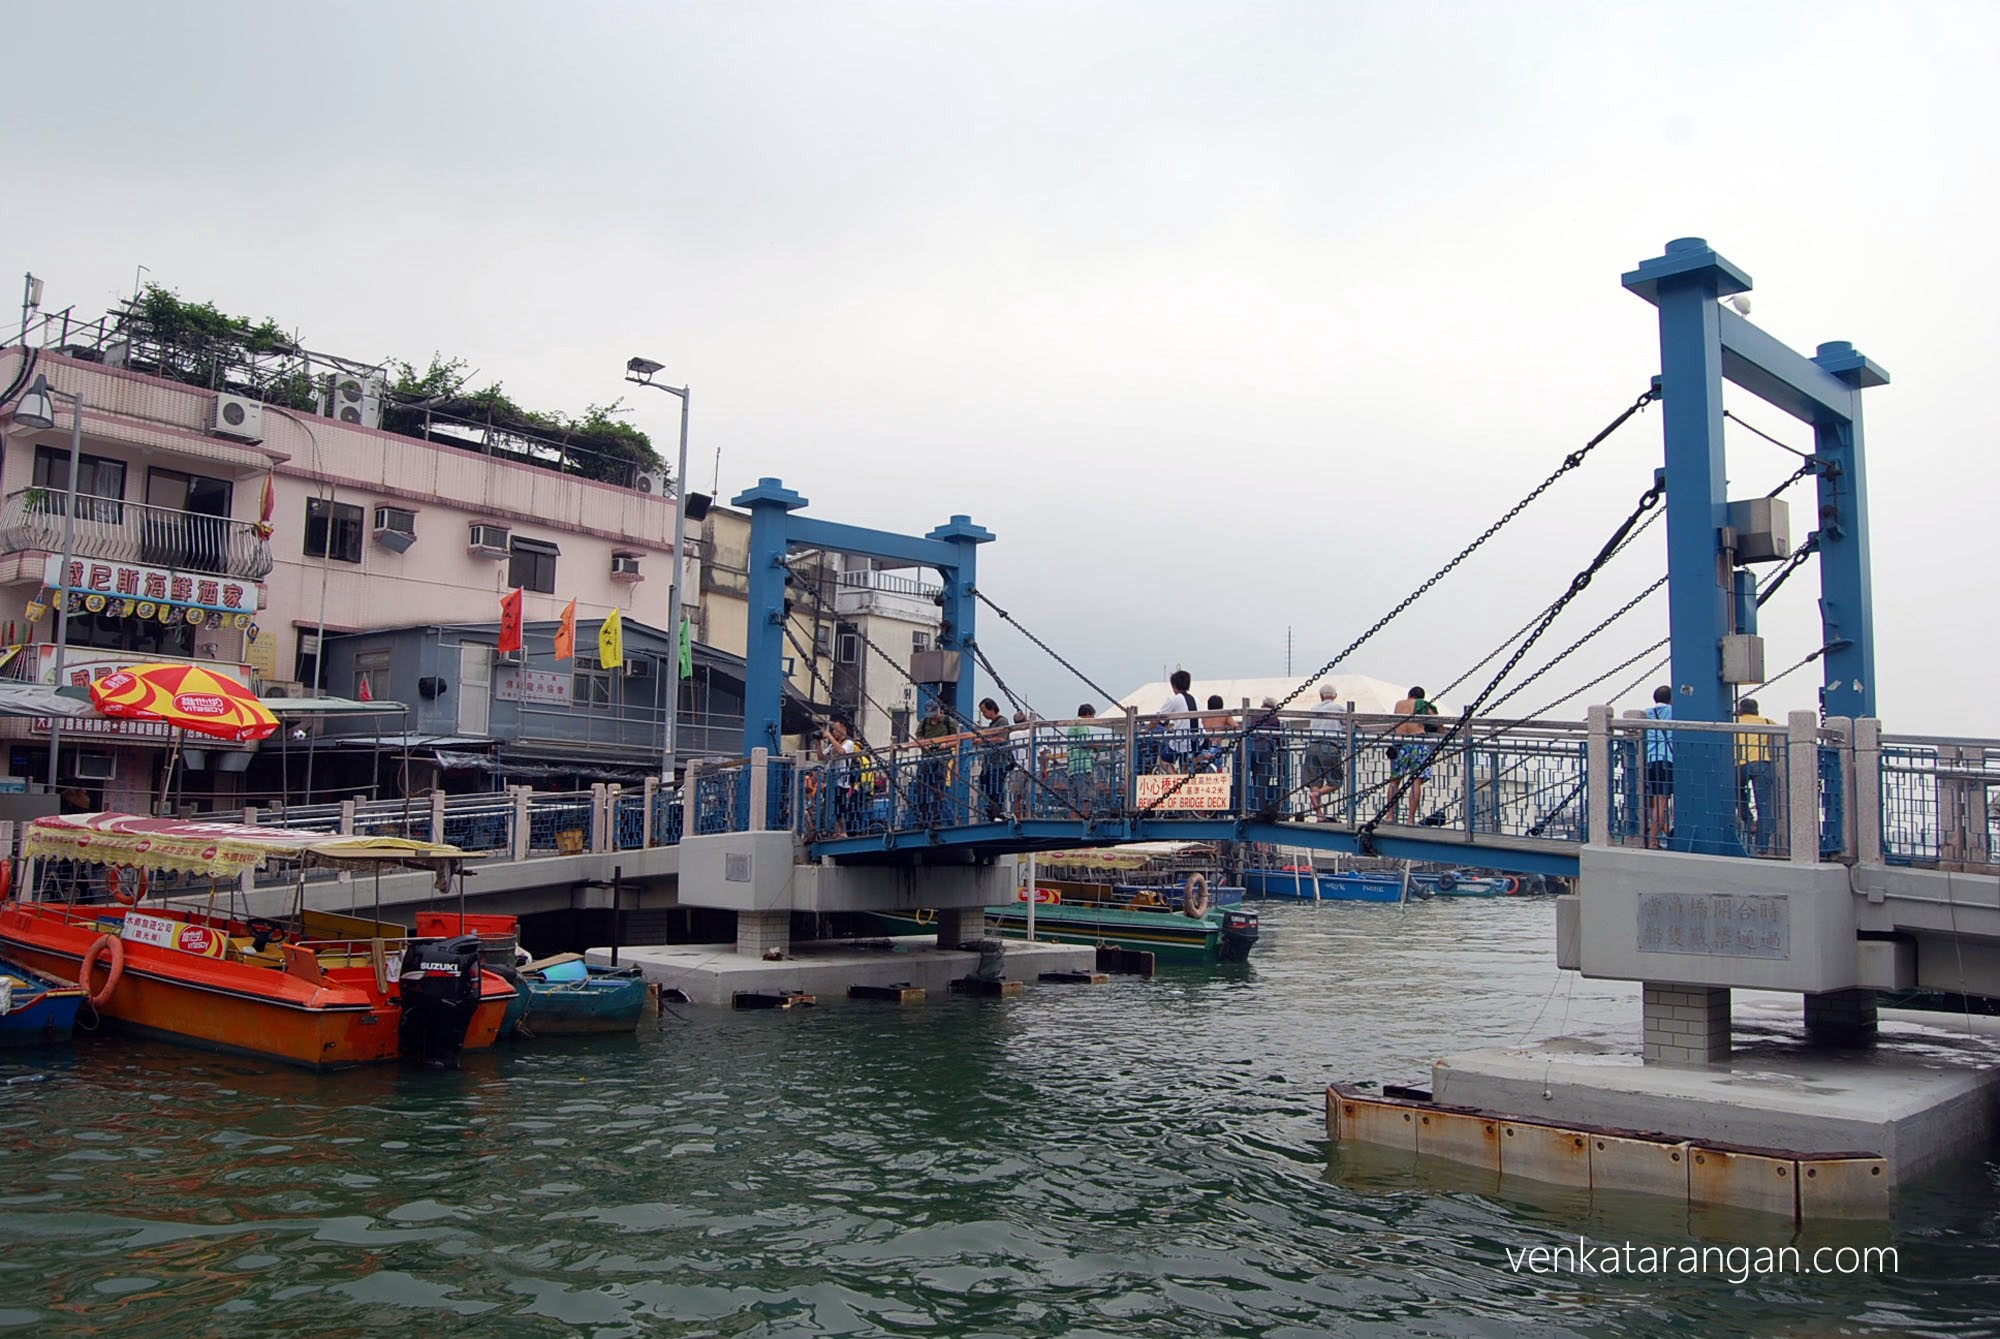 Waterway in Tai O